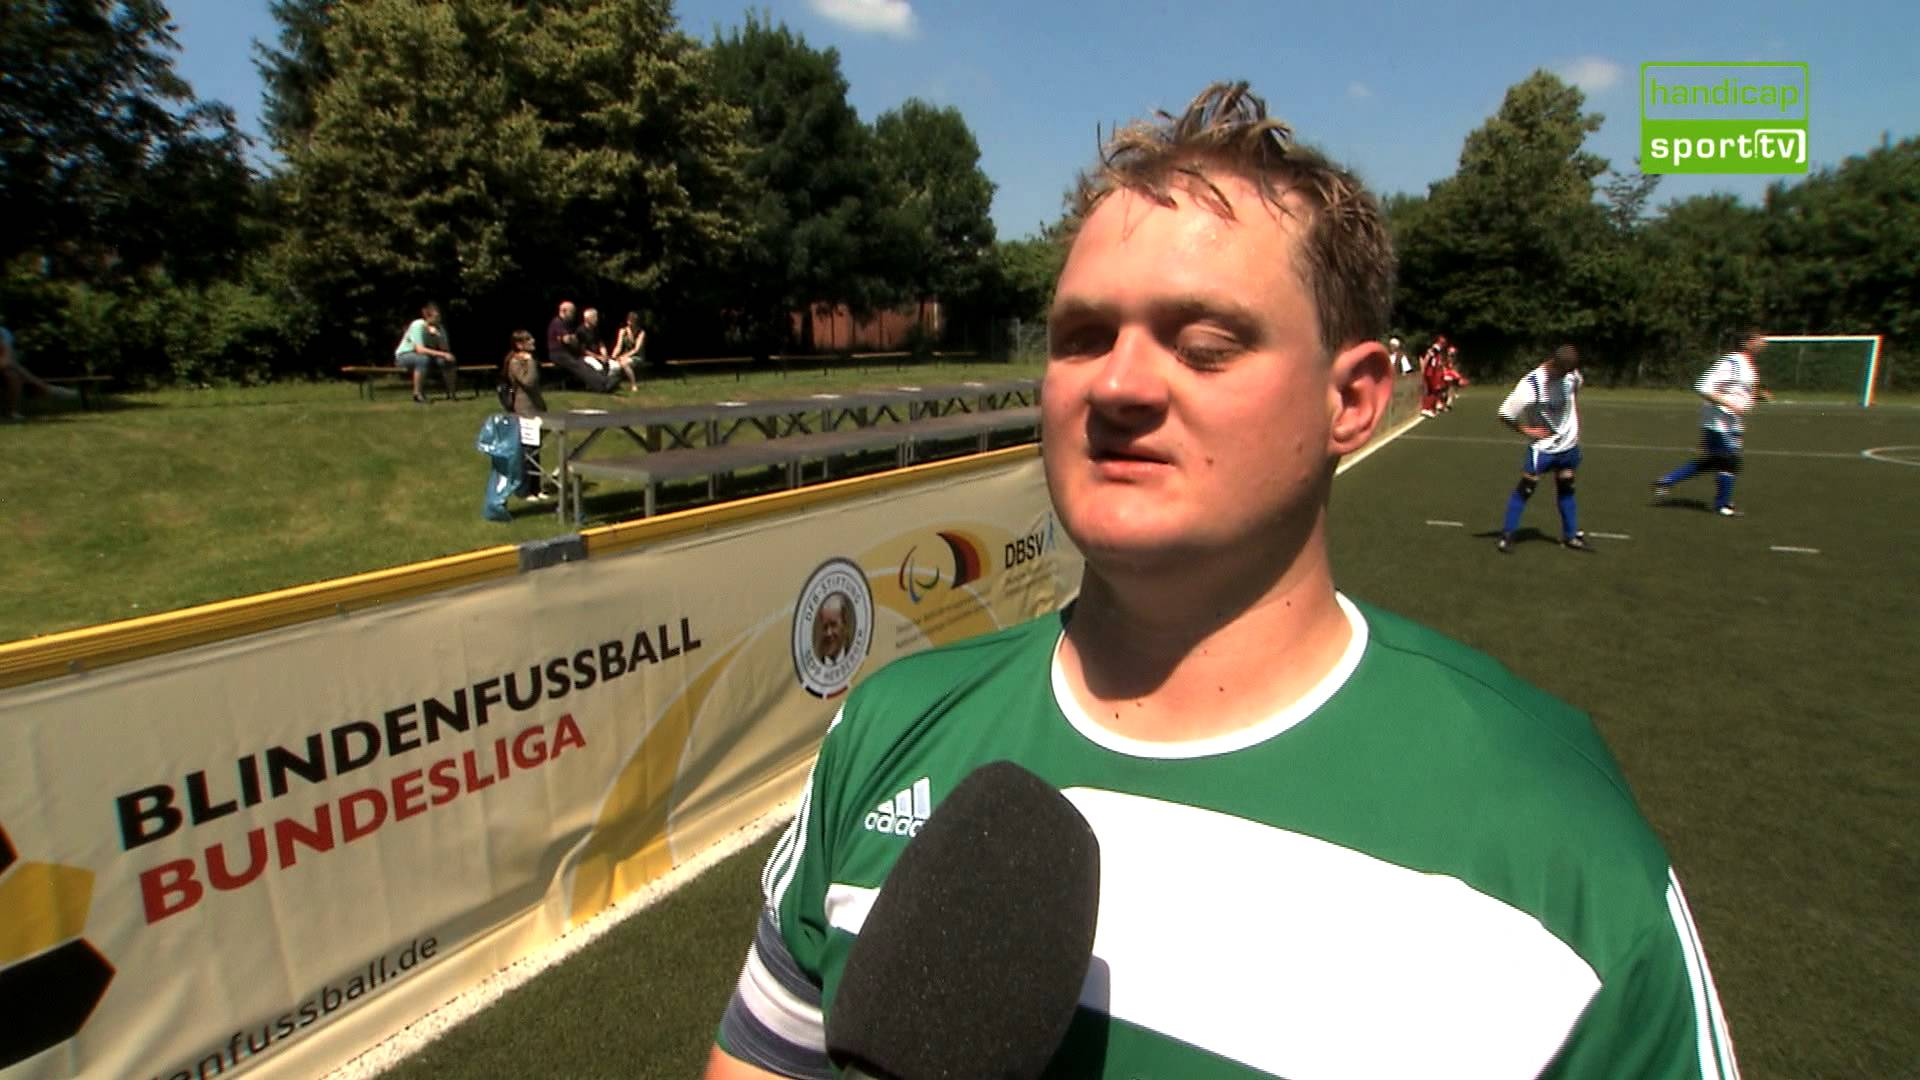 interviews-blindenfussball-bunde